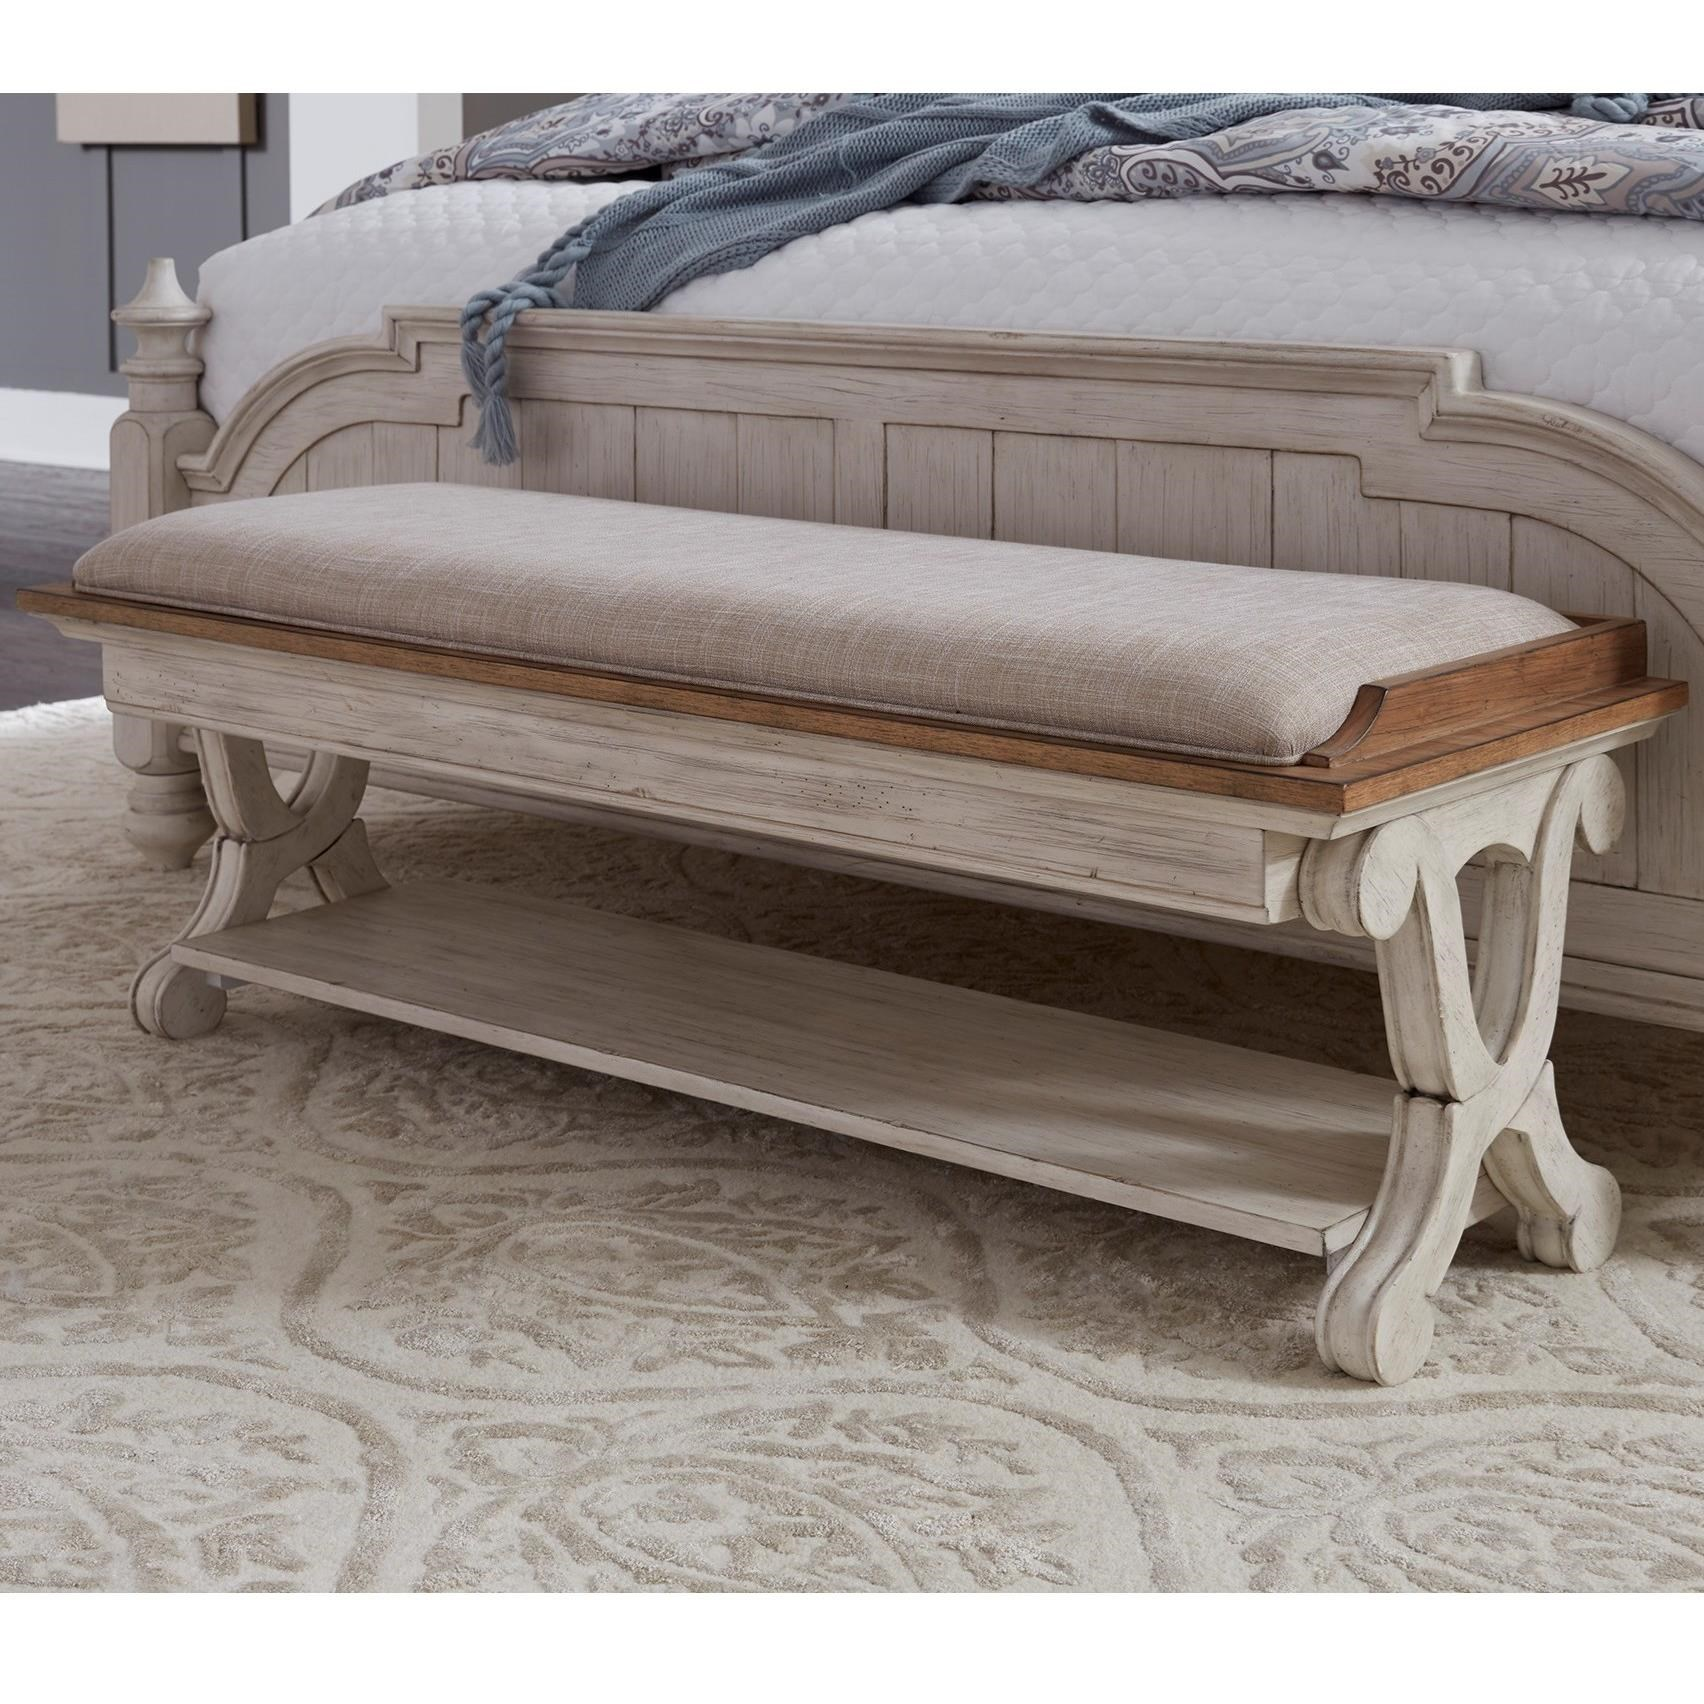 Liberty Furniture Farmhouse Reimagined Relaxed Vintage Bed Bench